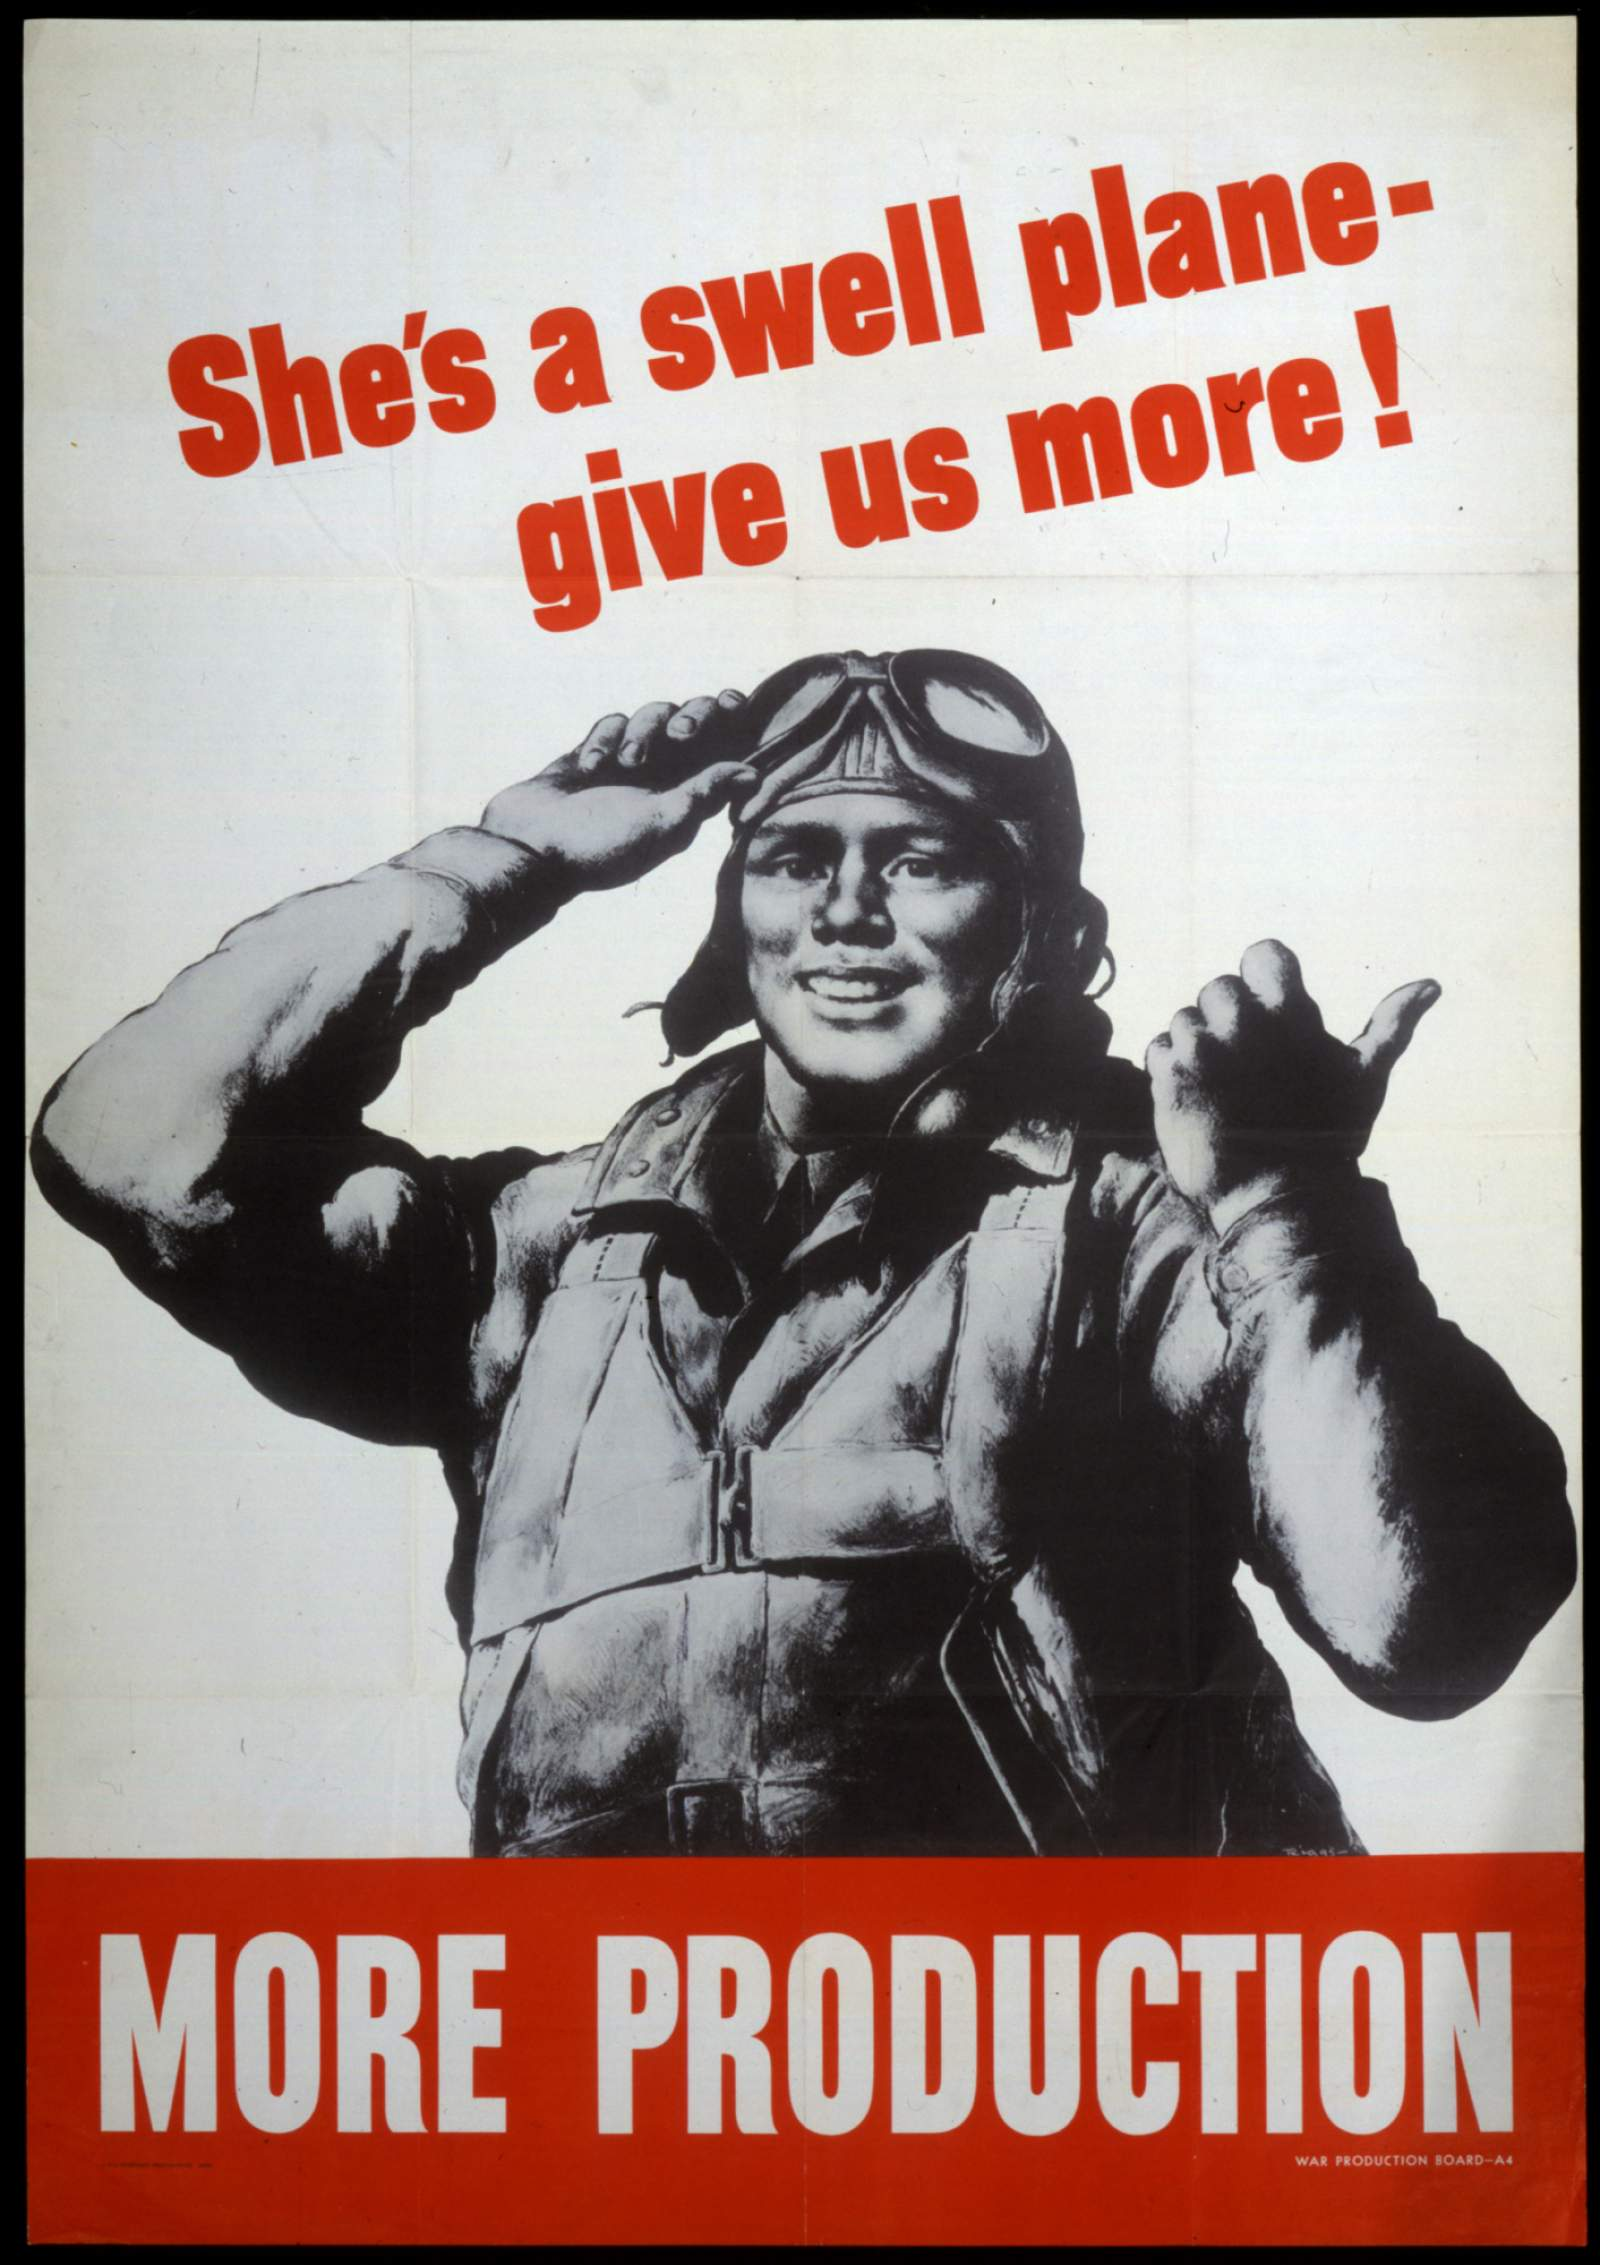 air force man with text saying she's a swell plane give us more more production